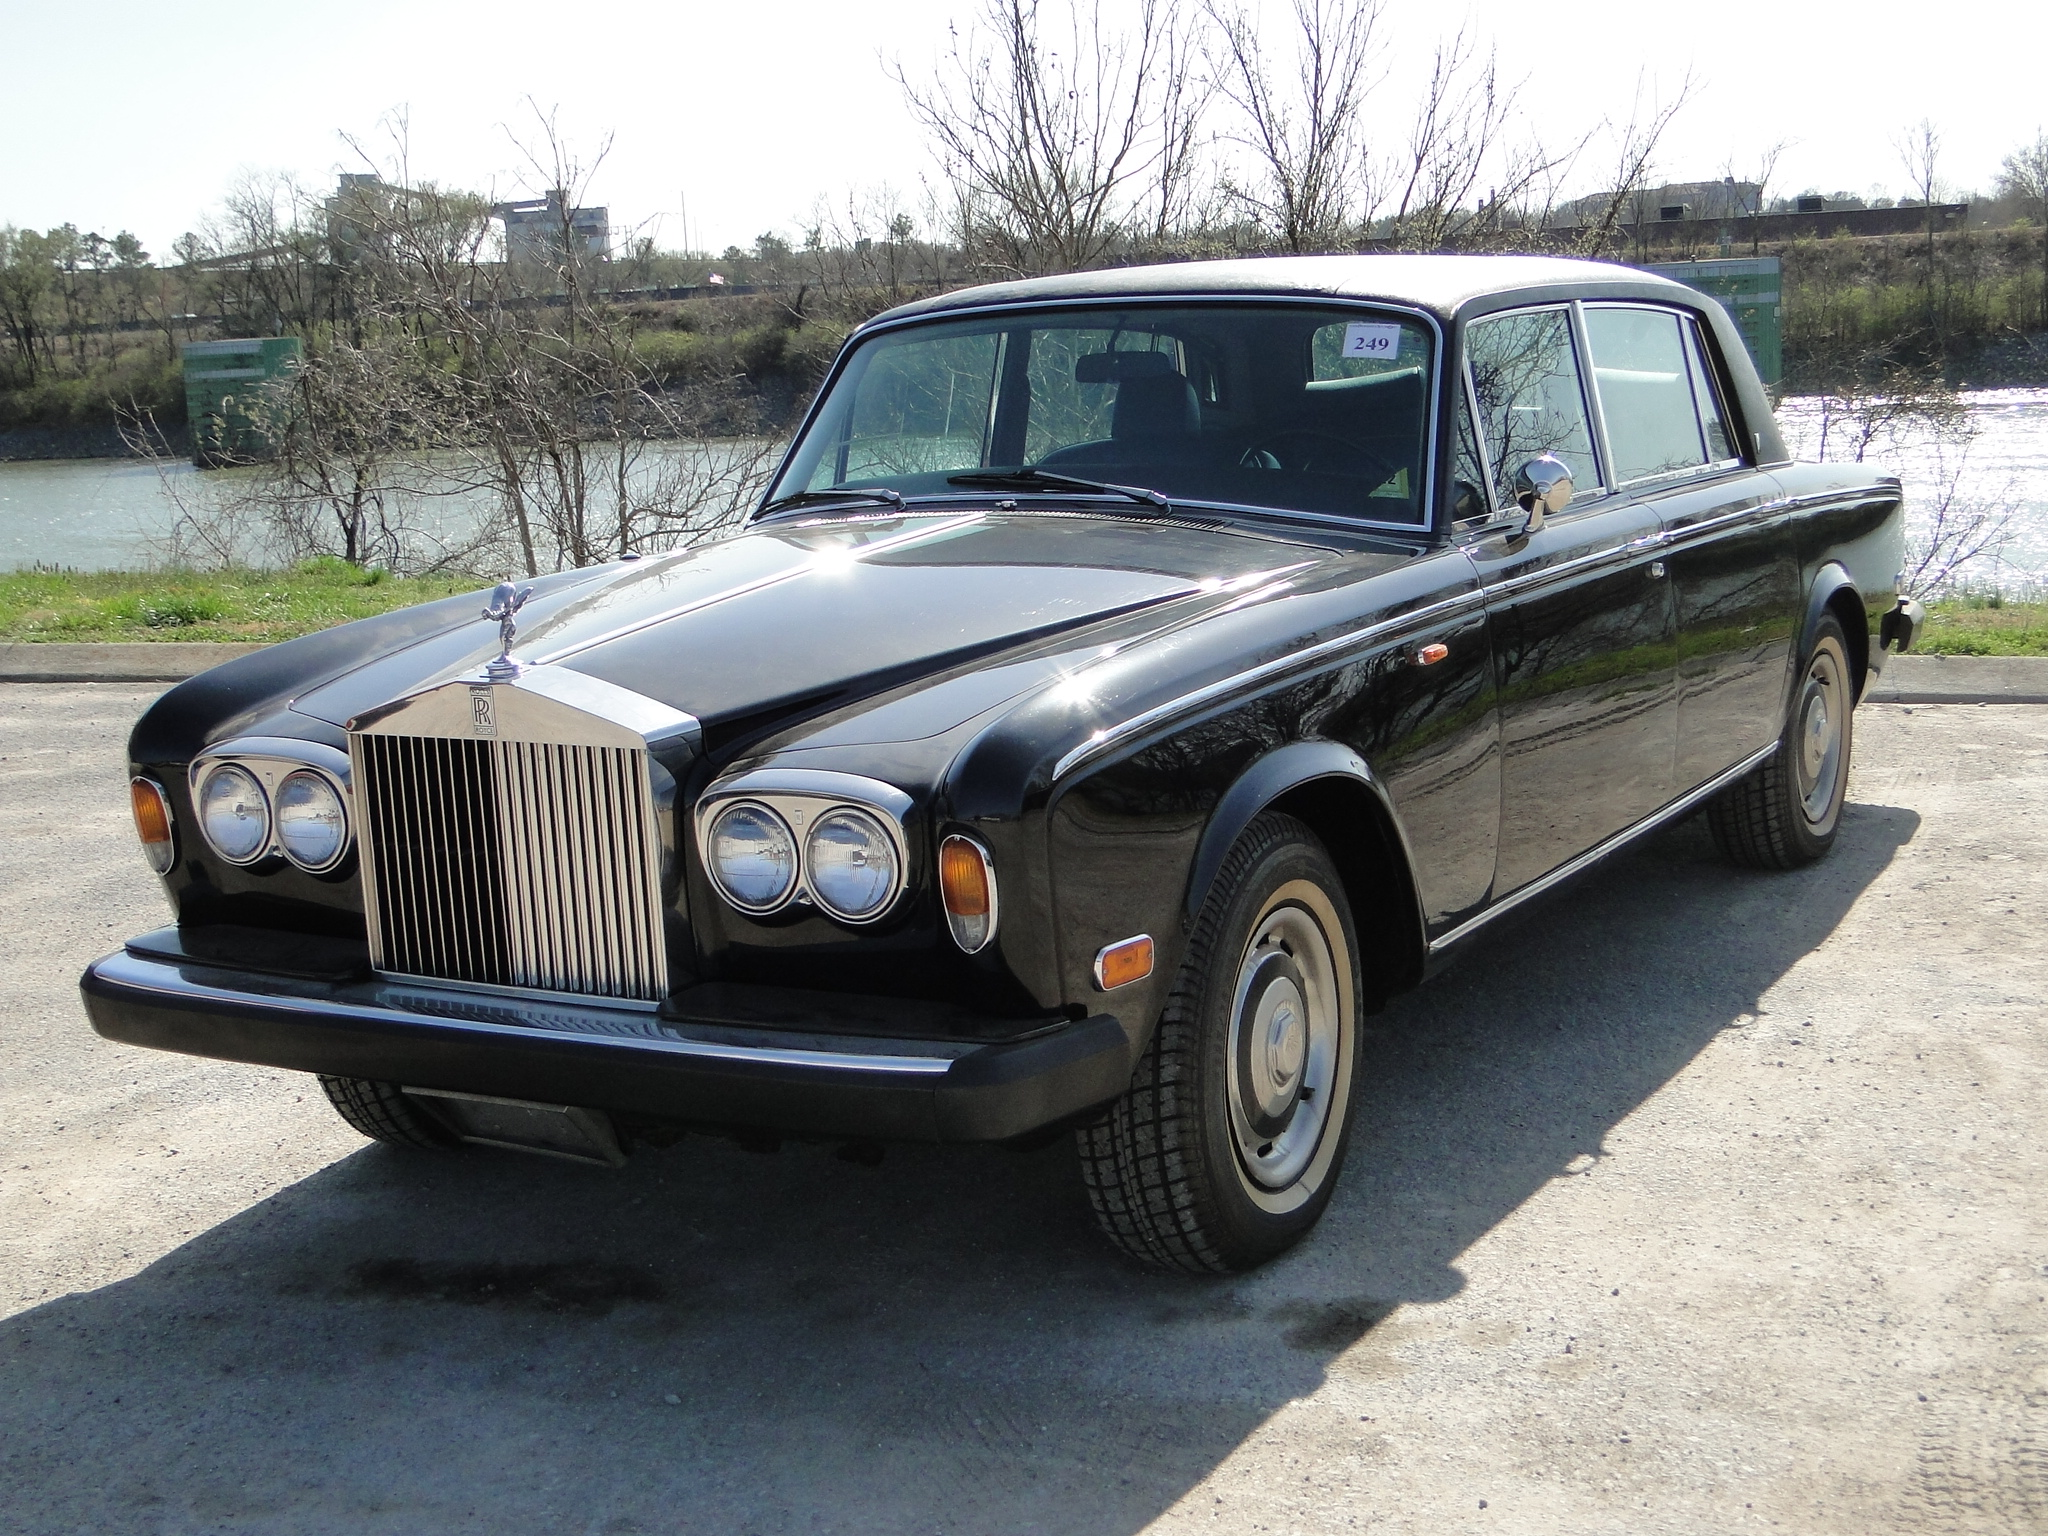 1976 Rolls-Royce Silver Shadow - Information and photos ...